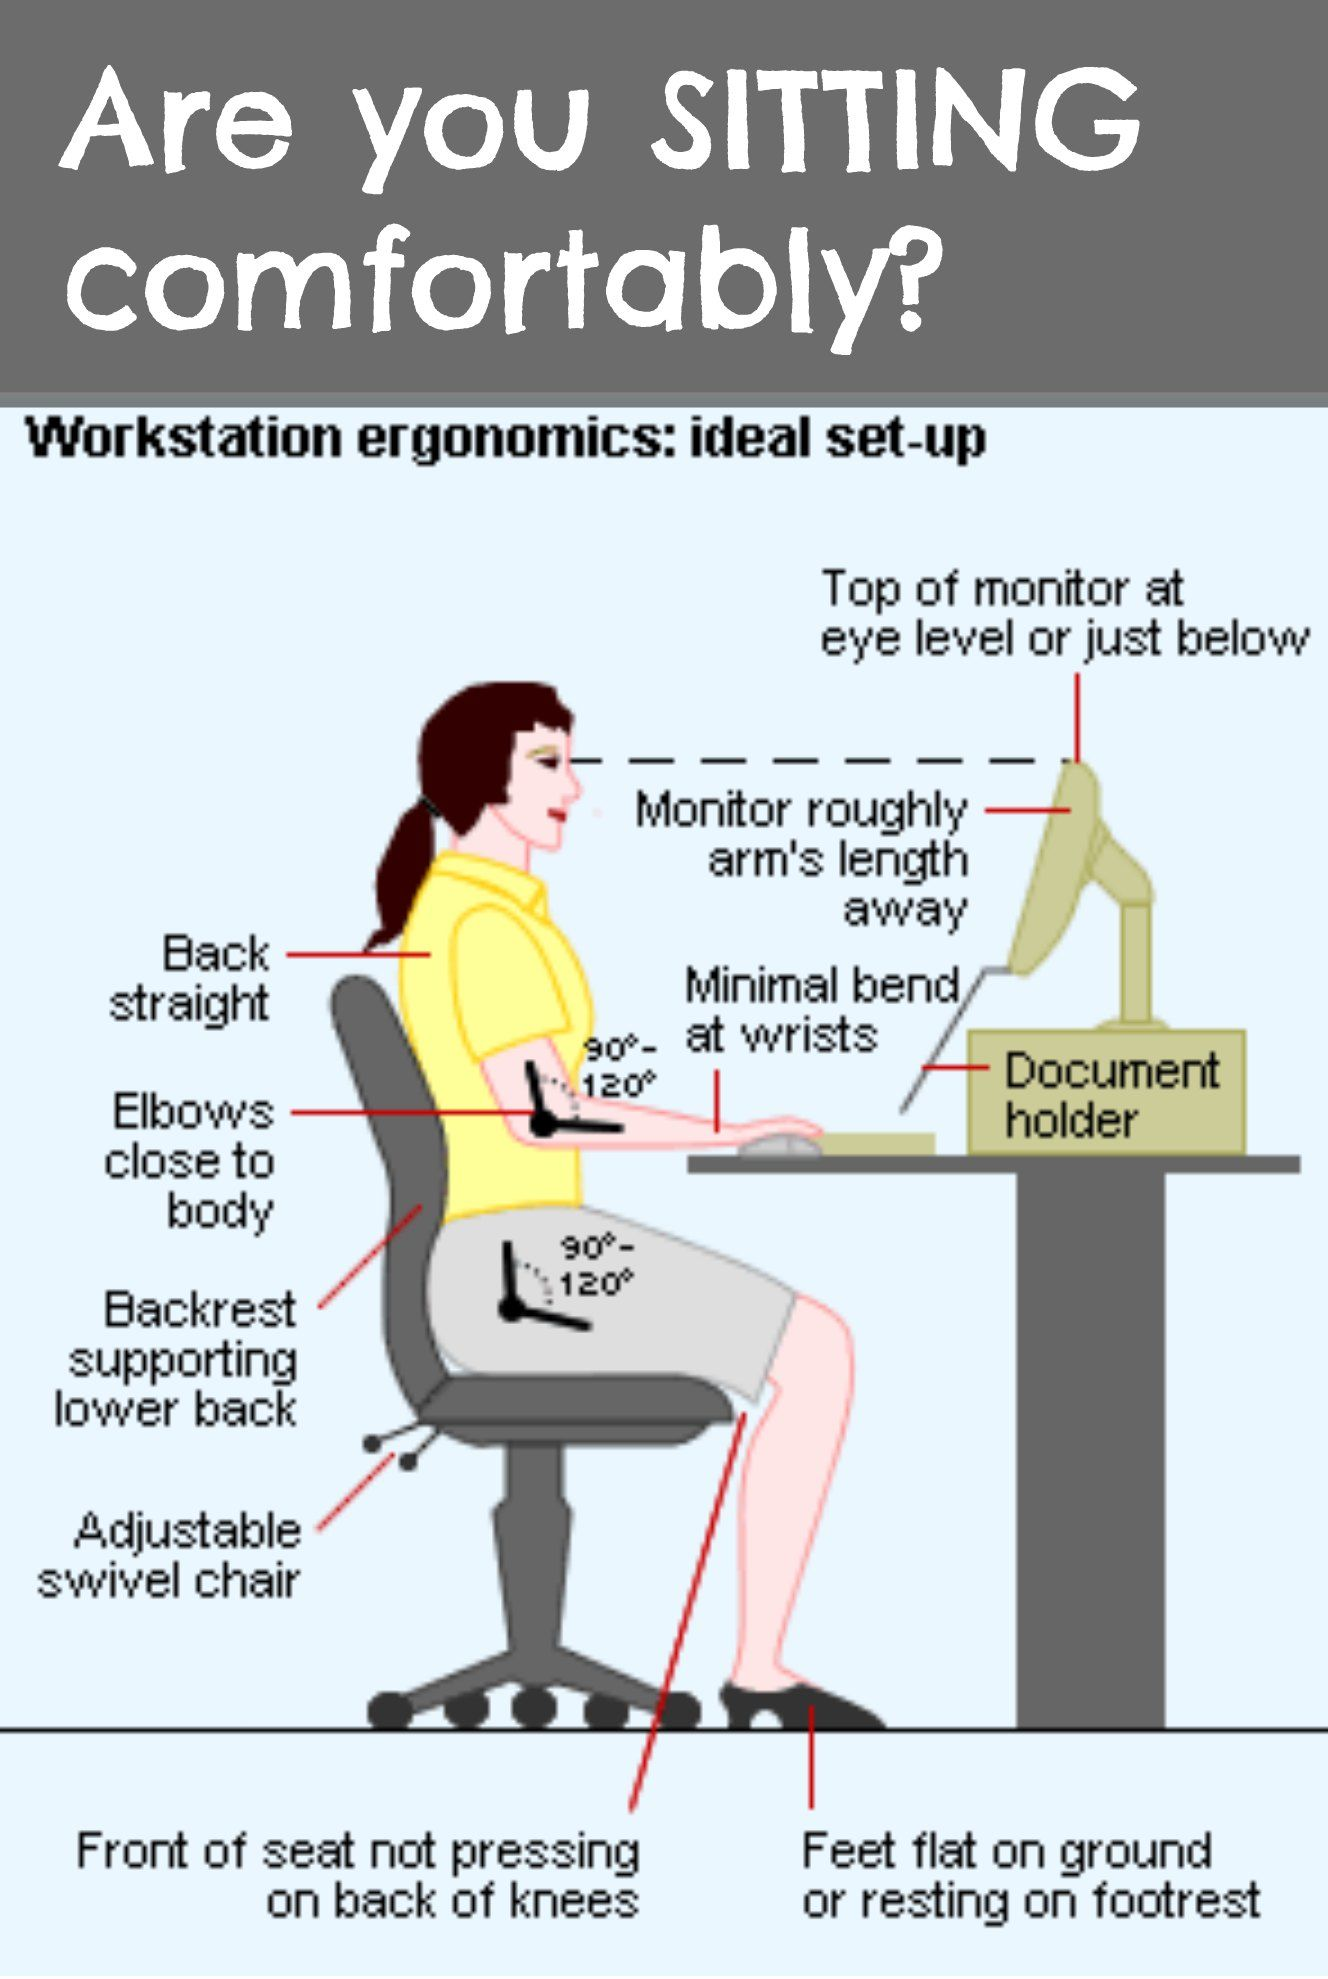 Are You Sitting Comfortably Your Desk Computer And Chair Set Up Correctly